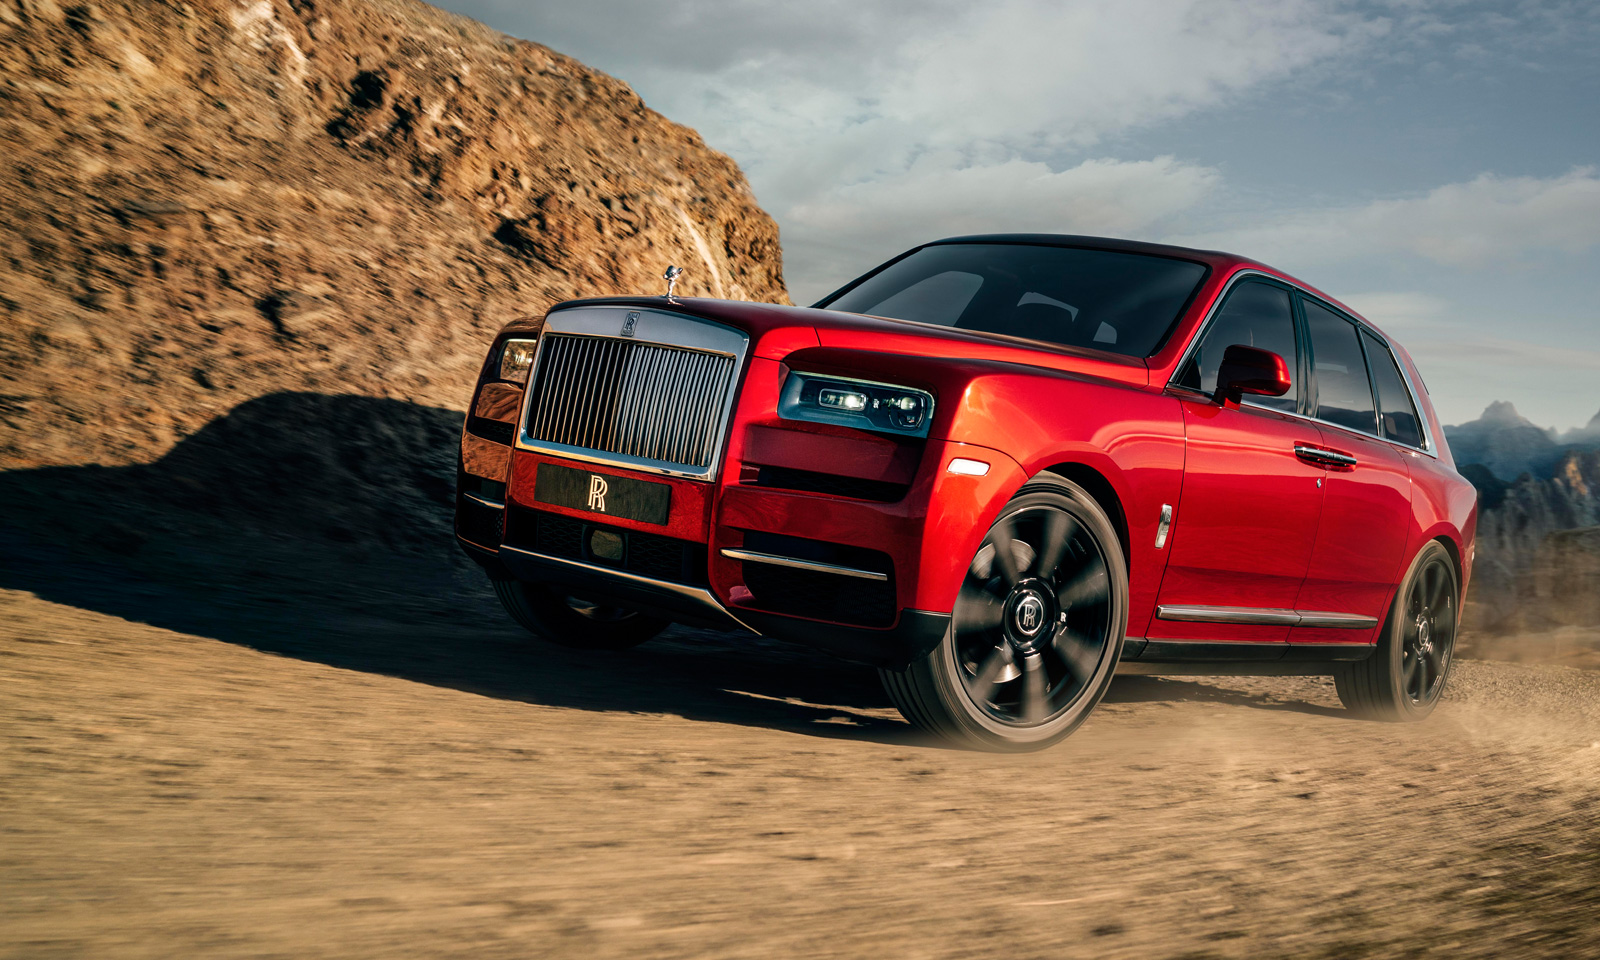 rolls royce luxury suv arrives 19th hole magazine. Black Bedroom Furniture Sets. Home Design Ideas